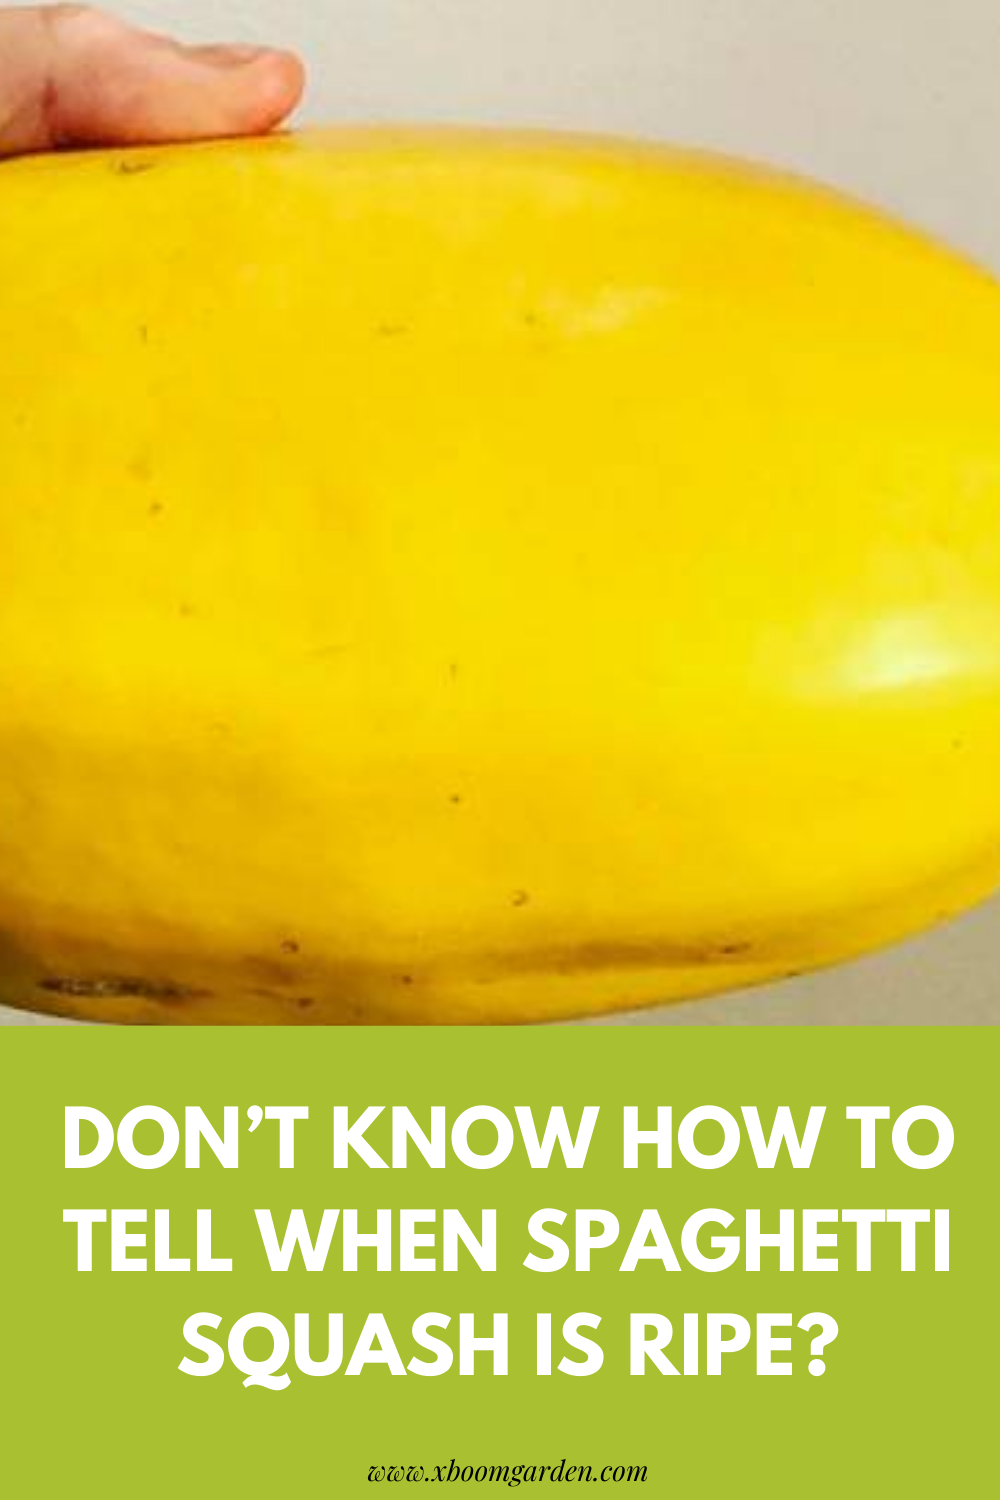 Don T Know How To Tell When Spaghetti Squash Is Ripe In 2020 Spaghetti Squash Healthy Benefits Squash